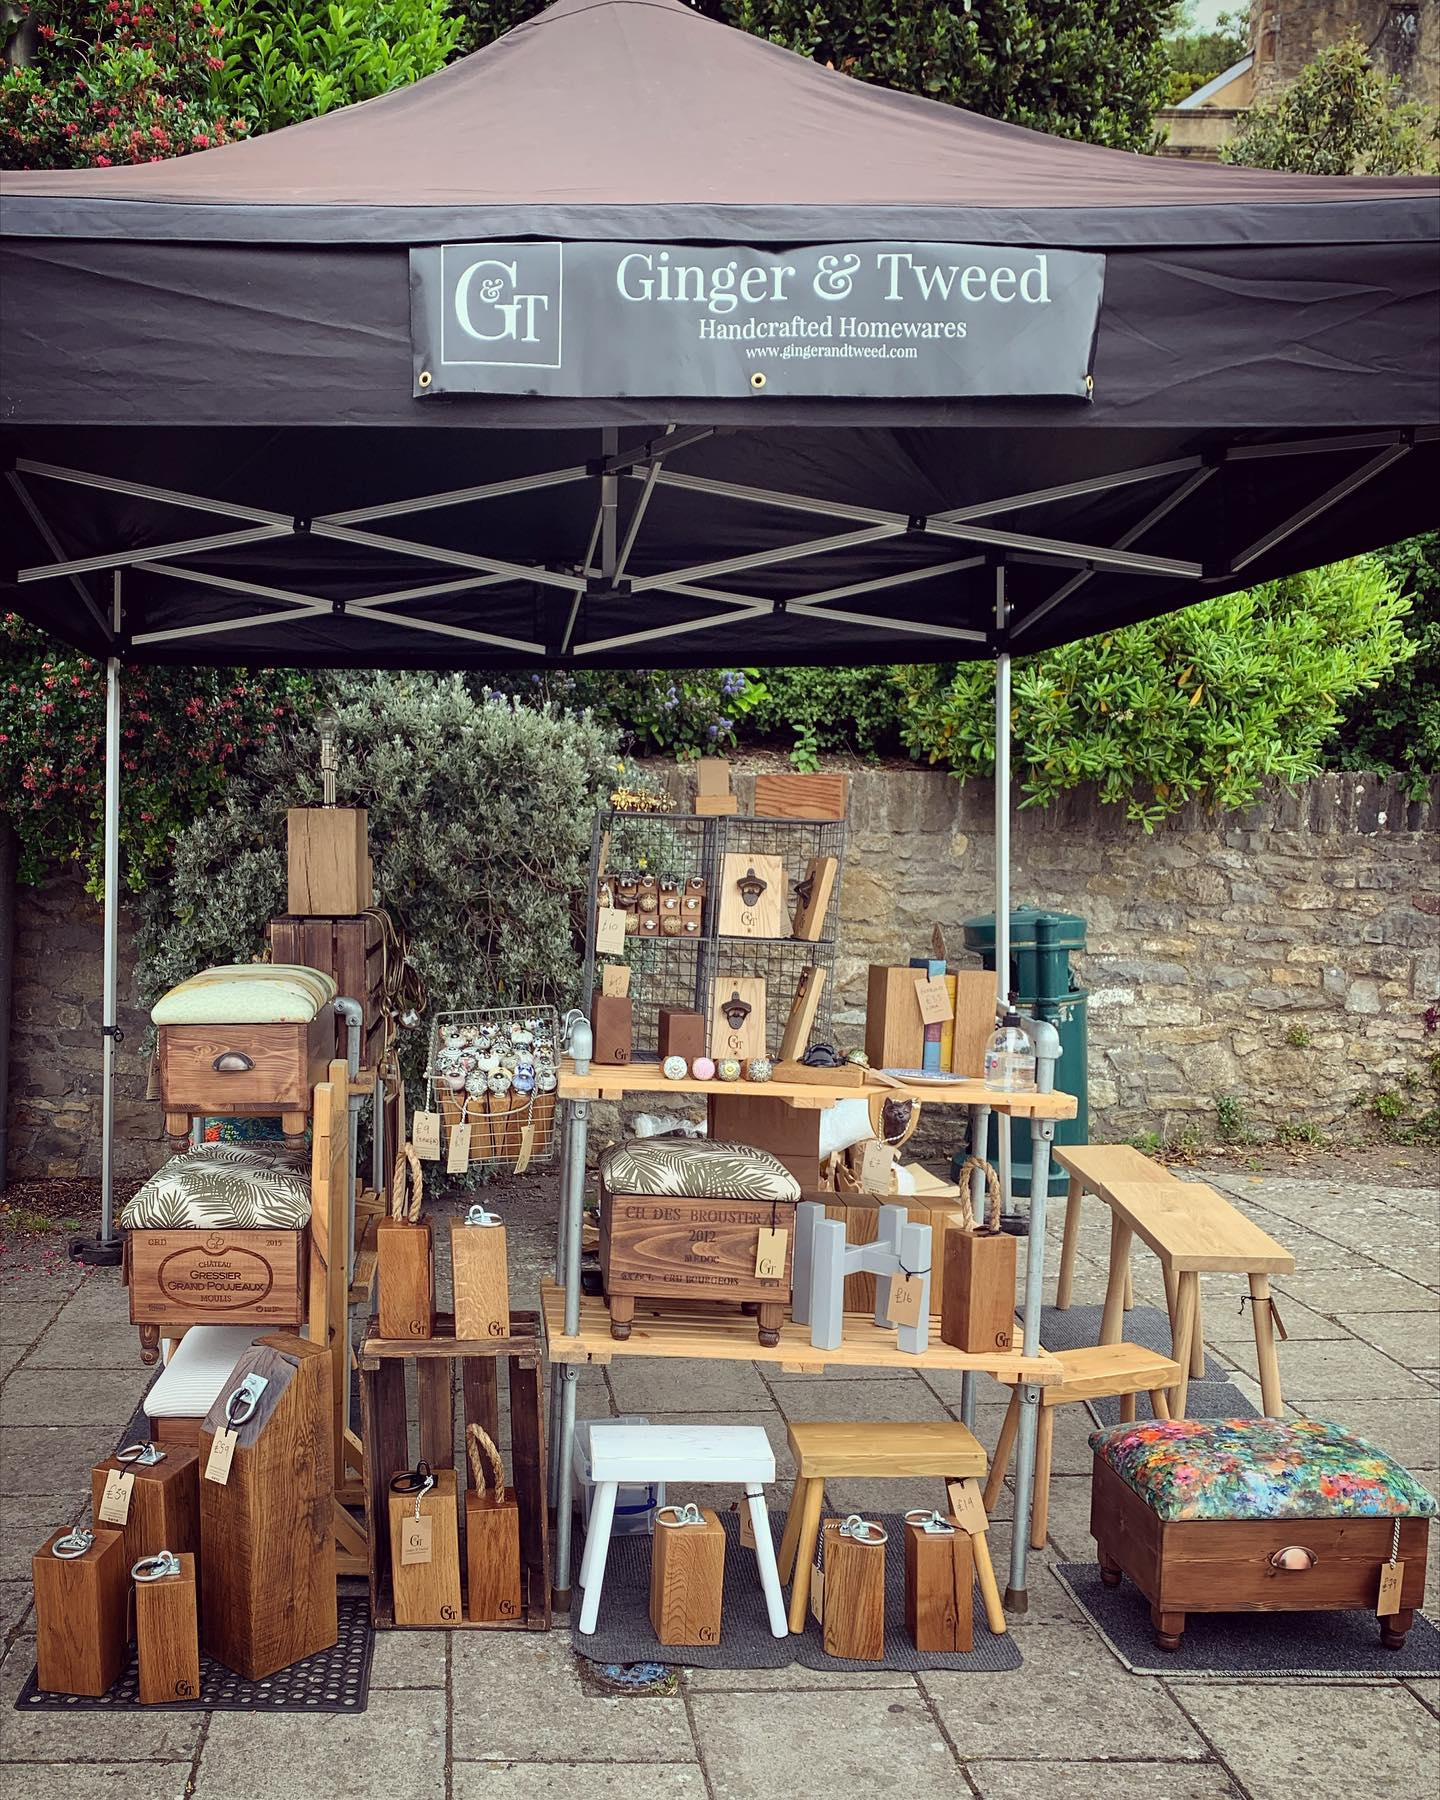 We'll be at the top of Hill Road tomorrow from 10 until 2. Looking forward to bringing along a fresh batch of large magnetic Picture hangers, headphone stands, new landscape note clip stands and a couple of sample products we've been working on. Hopefully the weather is kind 🤞#britishsummer #shoplocal #bristol #smallbusinesssunday #marketday #craft #homedecor #handmade #wiltshire #somerset #supportingindependentbusinesses